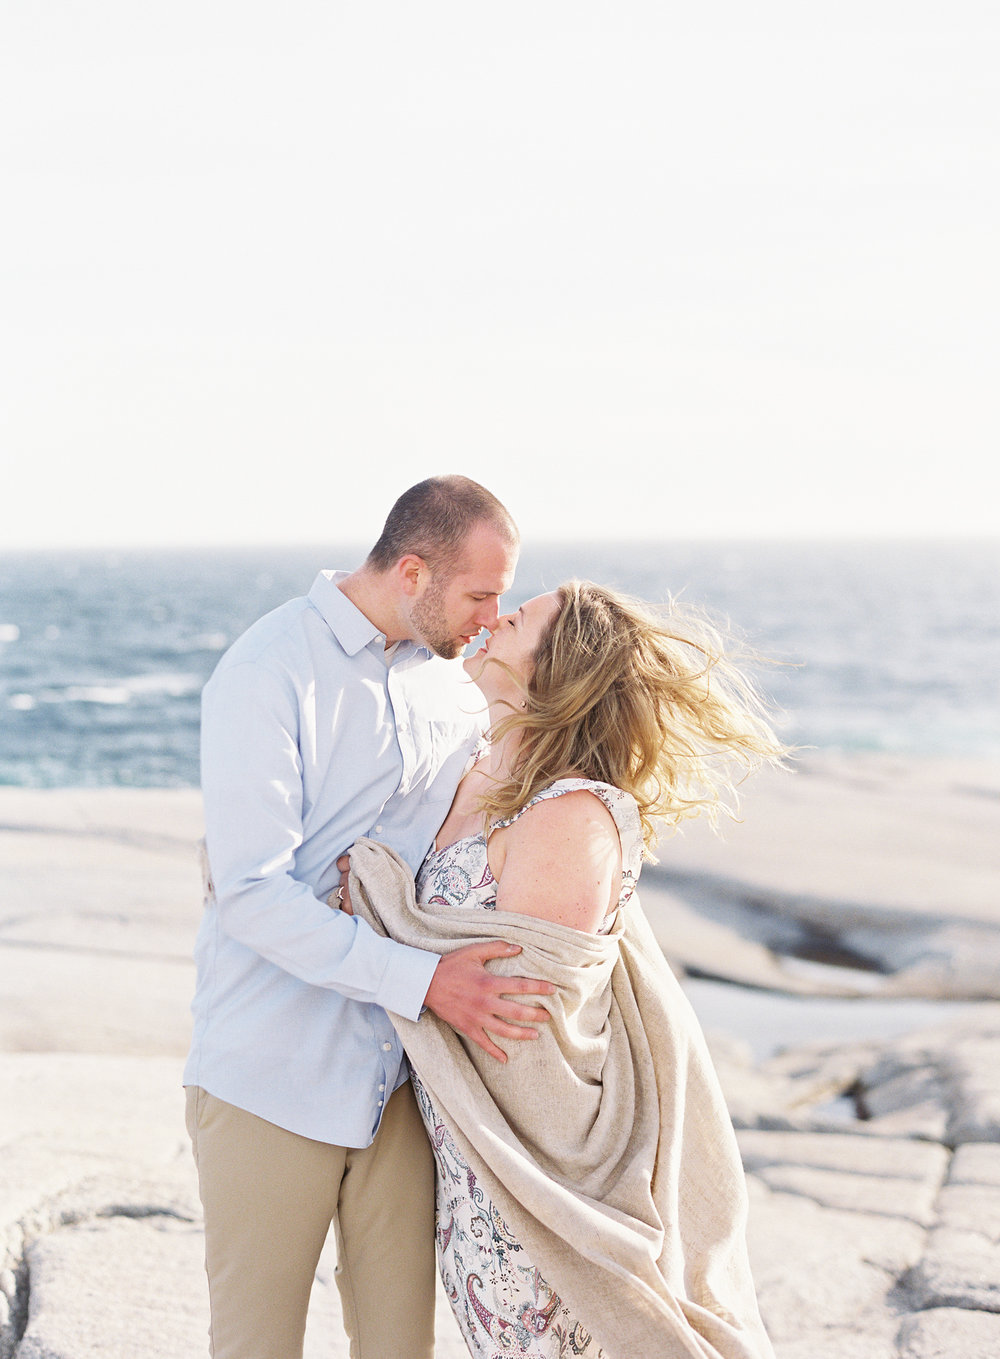 Jacqueline Anne Photography - Alex and Andrew Engagement at Peggy's Cove - Halifax-105.jpg